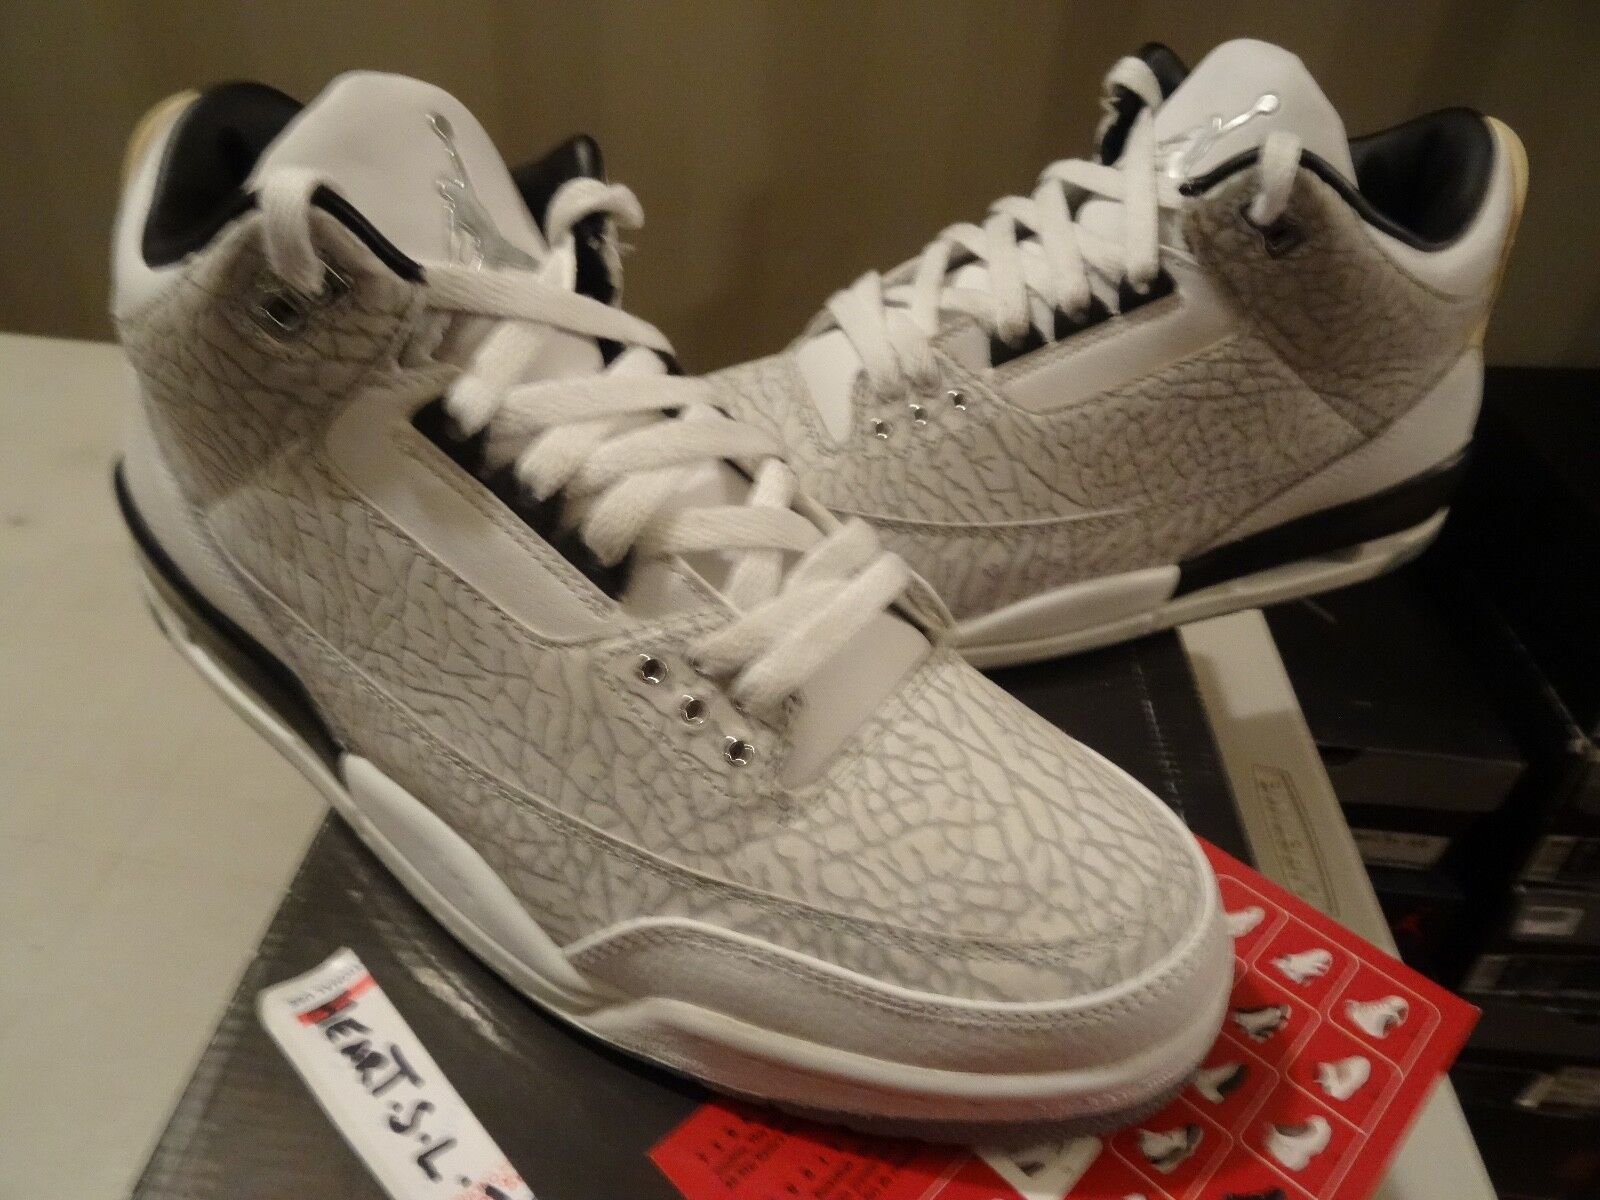 ef0da47ed67 2007 Nike Air Jordan III 3 Retro FLIP WHITE BLACK 315767-101 SZ 11.5 GREY  CEMENT nxpdai2498-Athletic Shoes